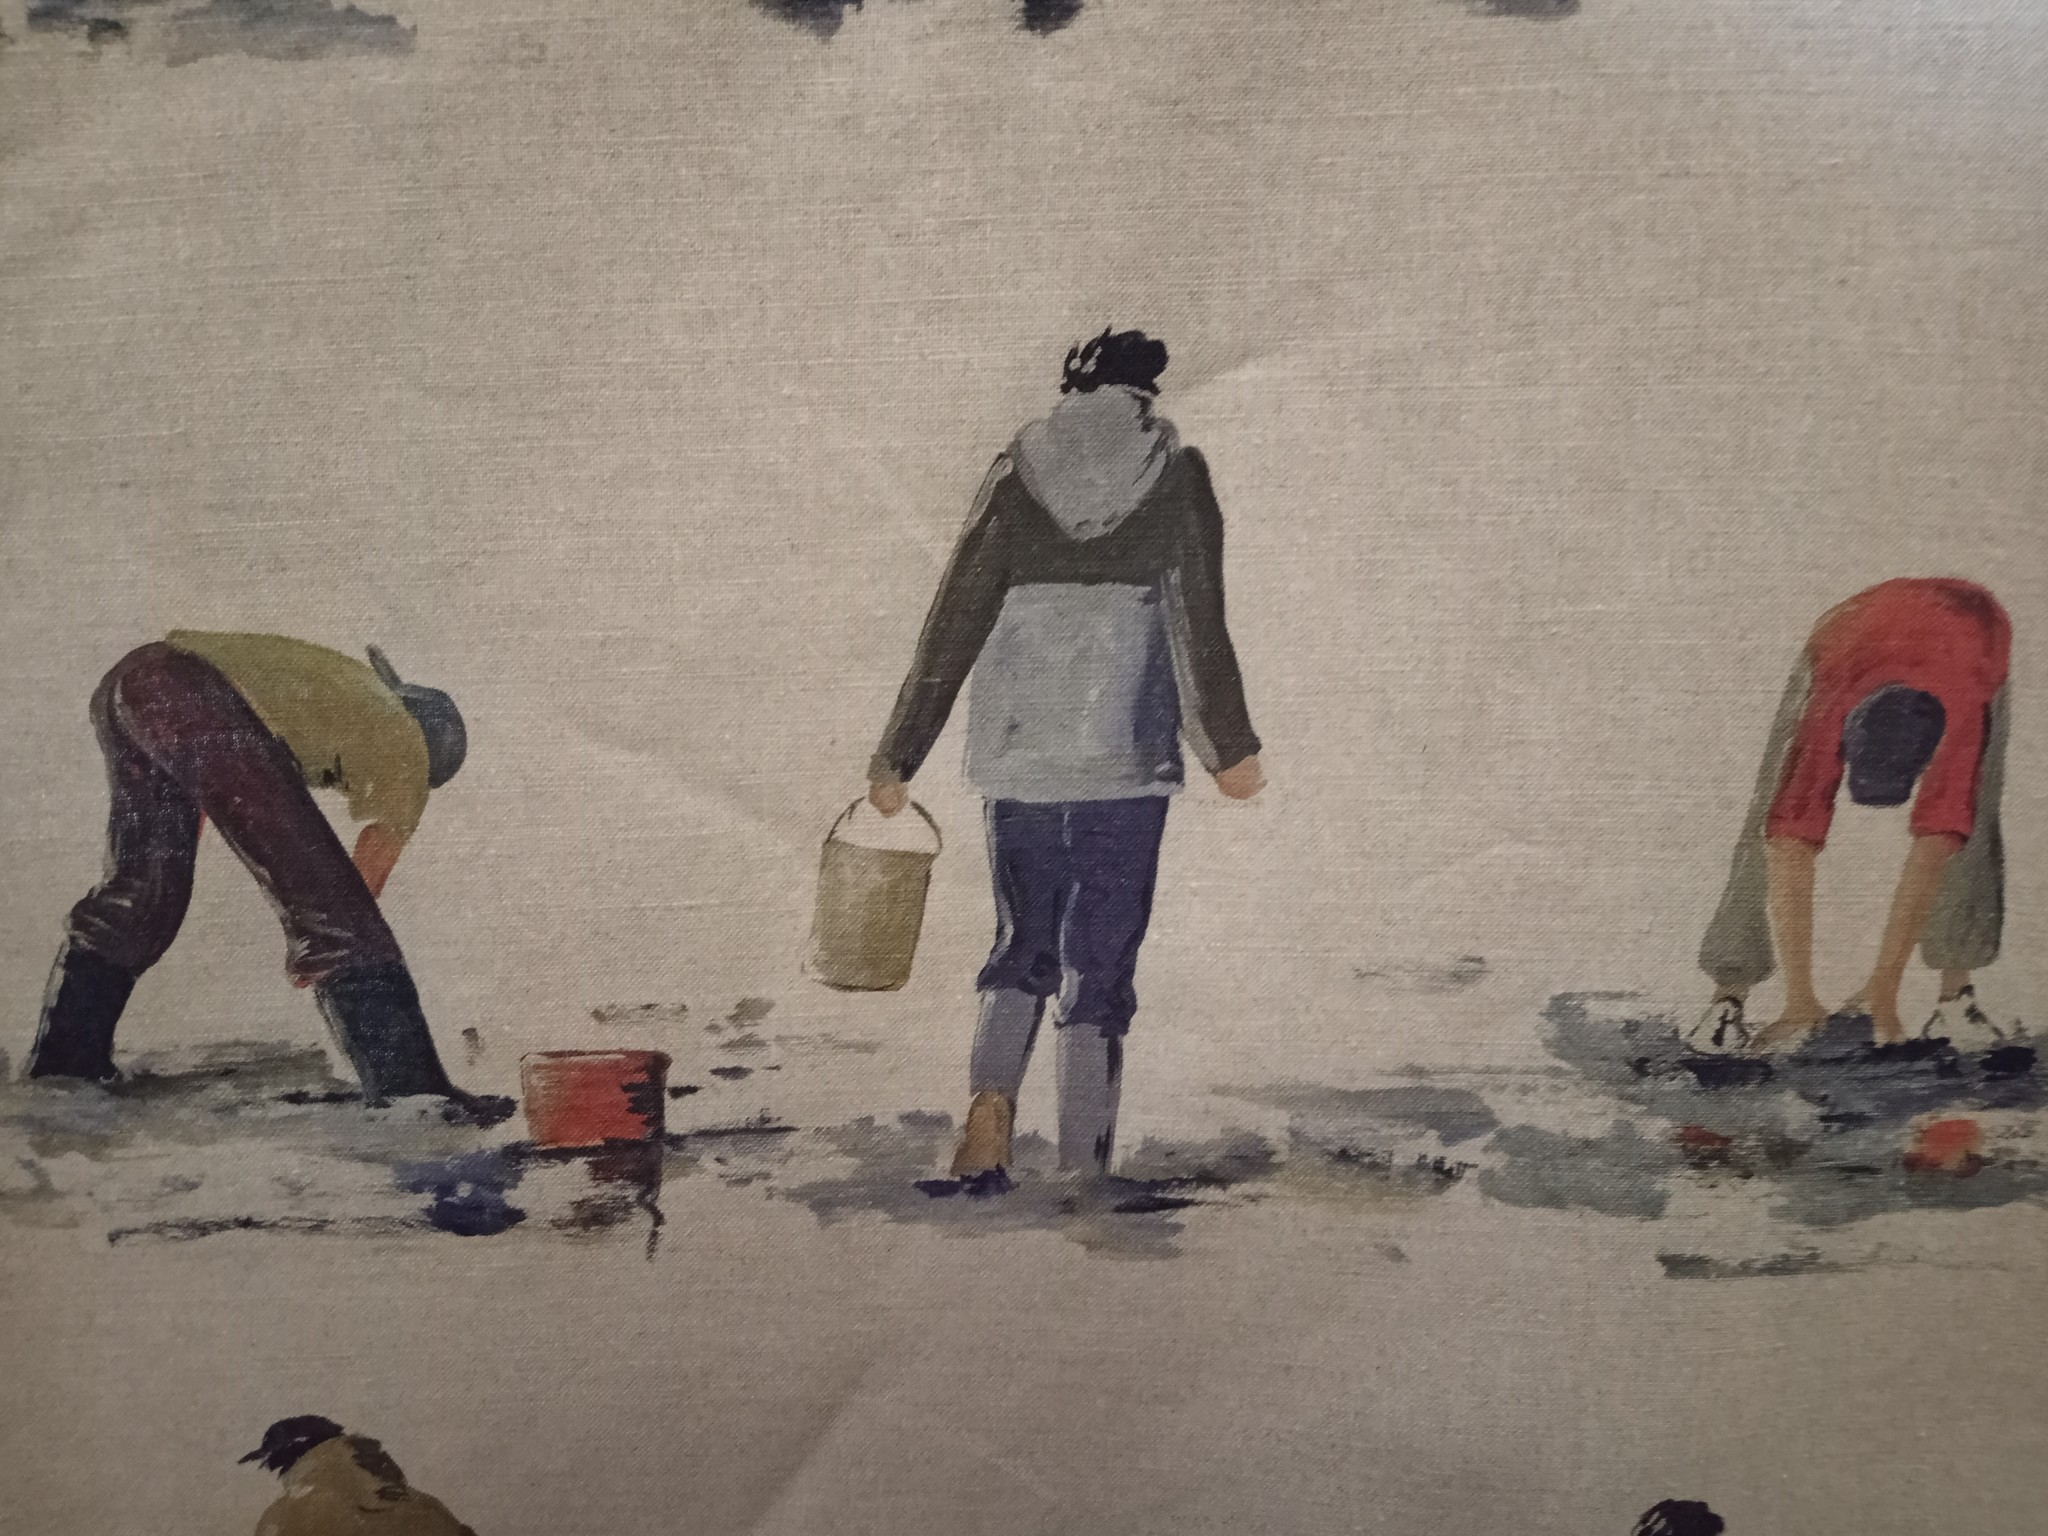 Linen fabric shrimp fishermen